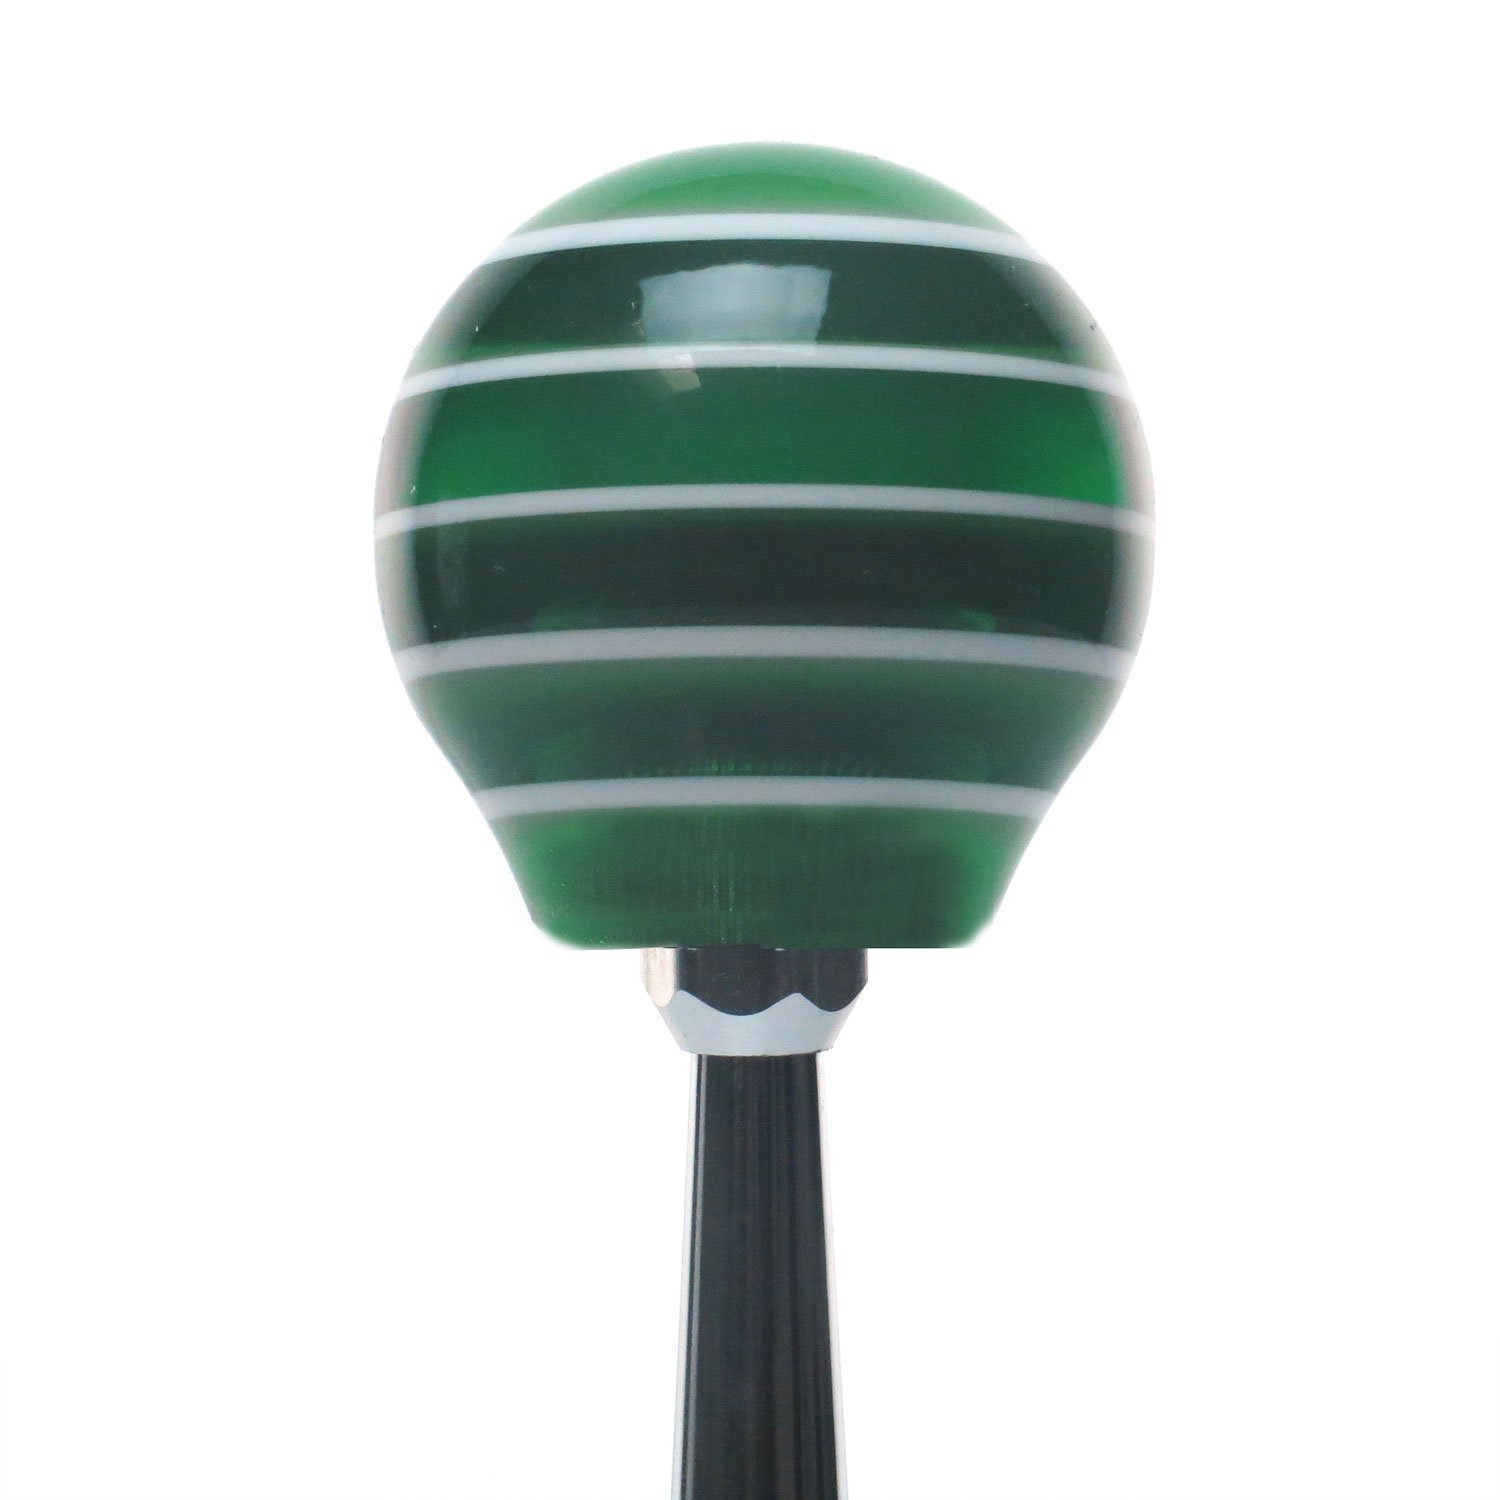 White Shift Pattern CP3n American Shifter 127452 Green Stripe Shift Knob with M16 x 1.5 Insert